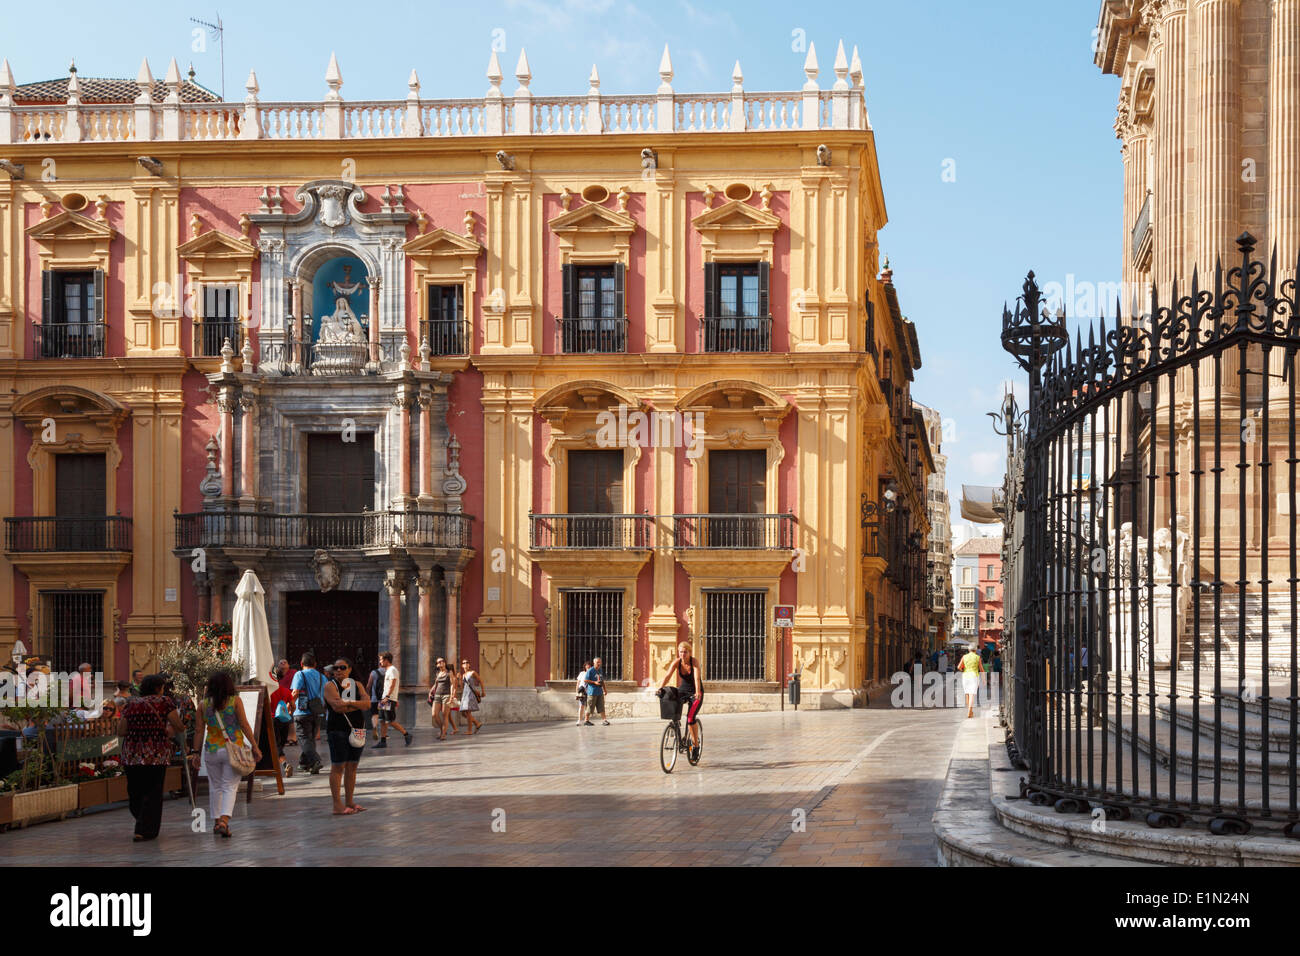 Malaga, Malaga Province, Costa del Sol, Andalusia, southern Spain. Palacio Episcopal, or Episcopal Palace, in Plaza del Obispo. - Stock Image